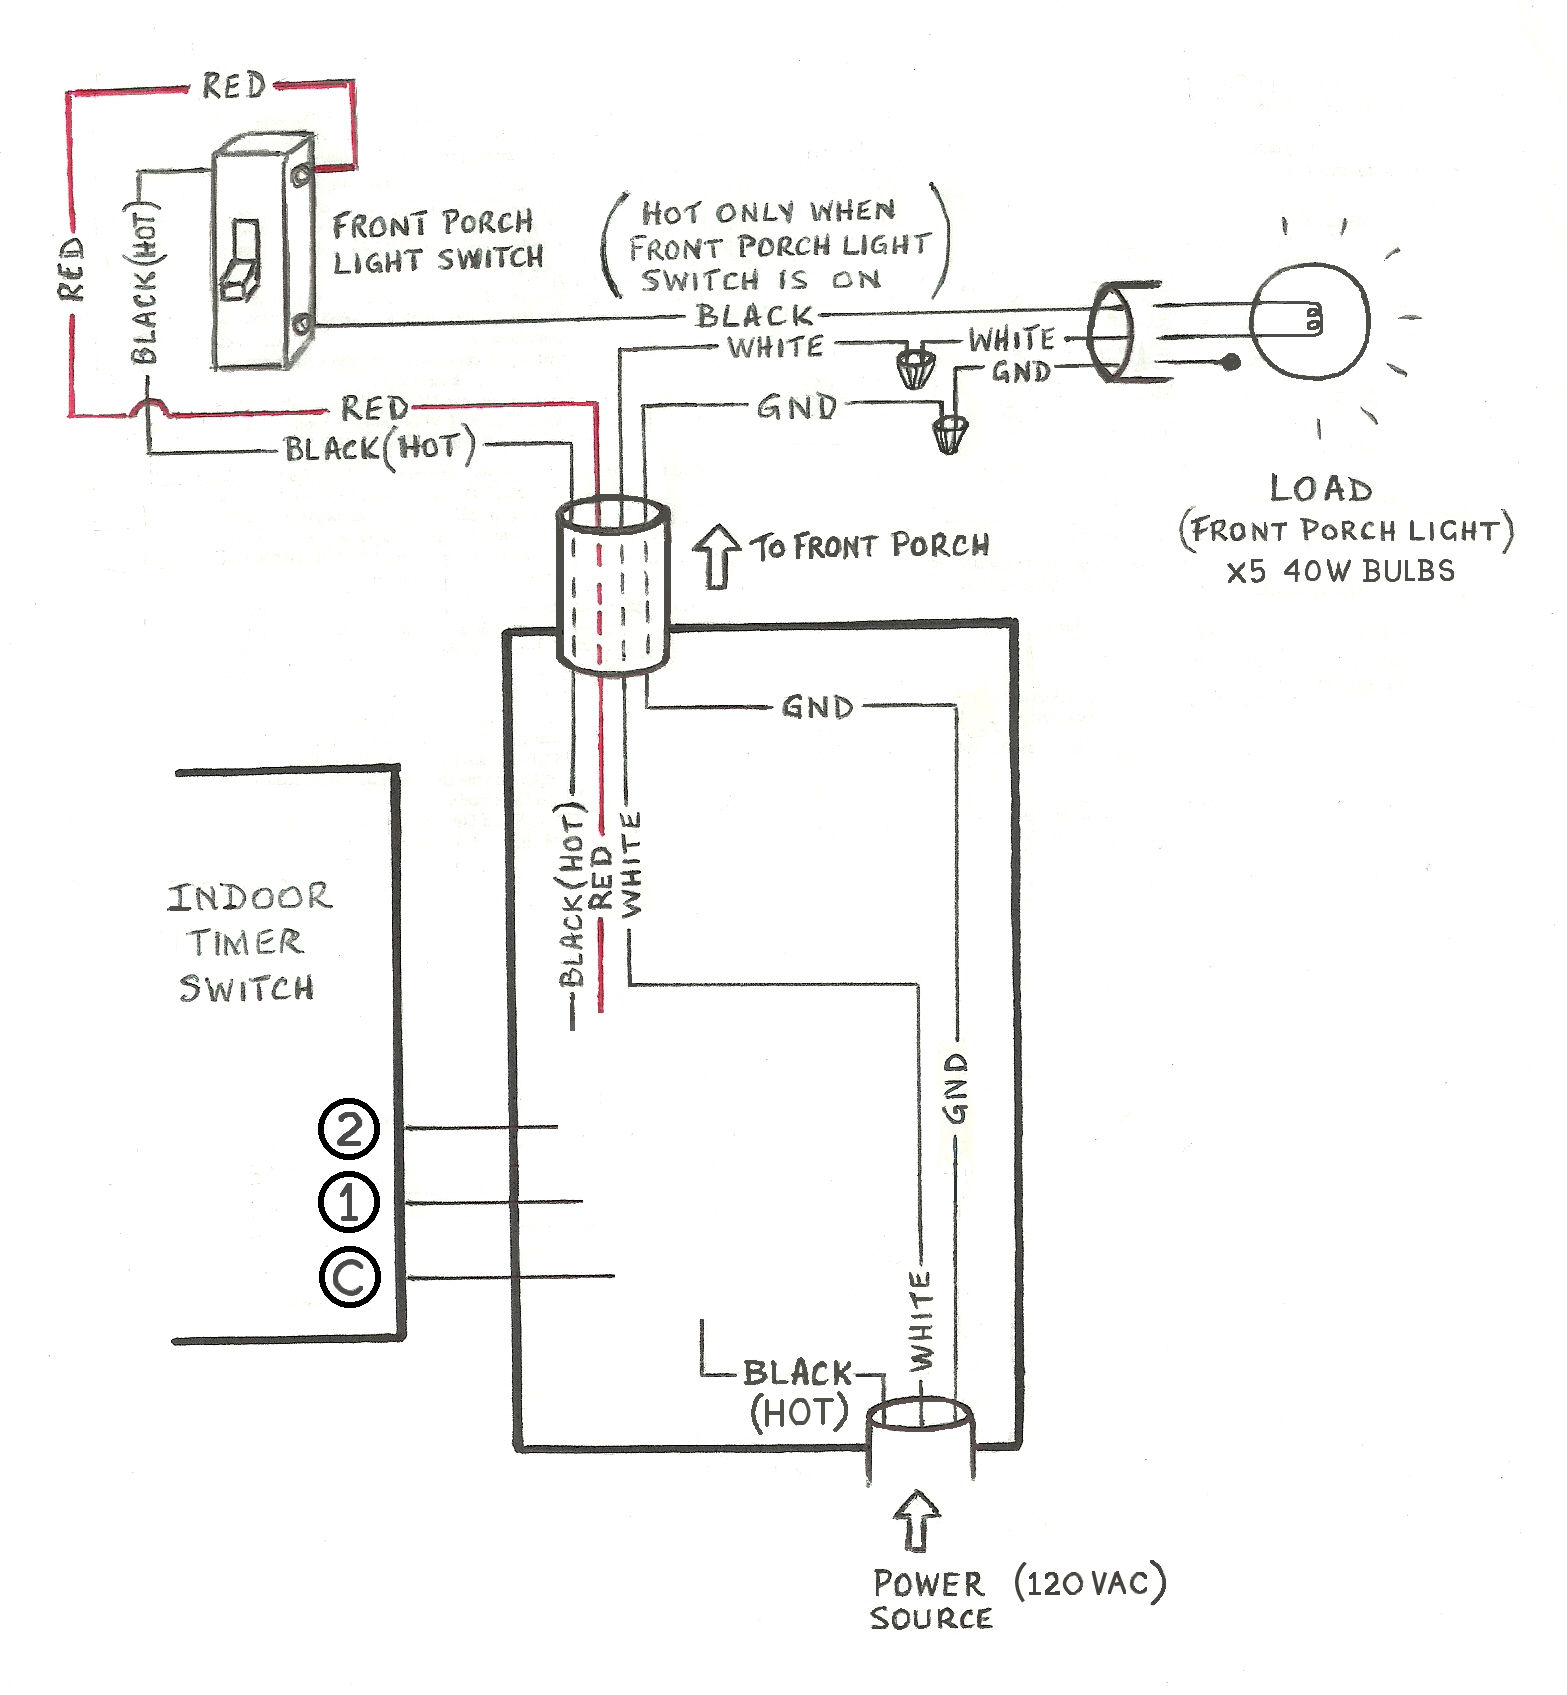 Awesome Need Help Wiring A 3 Way Honeywell Digital Timer Switch Home Dandim Mohammedshrine Wiring Diagrams Dandimmohammedshrineorg